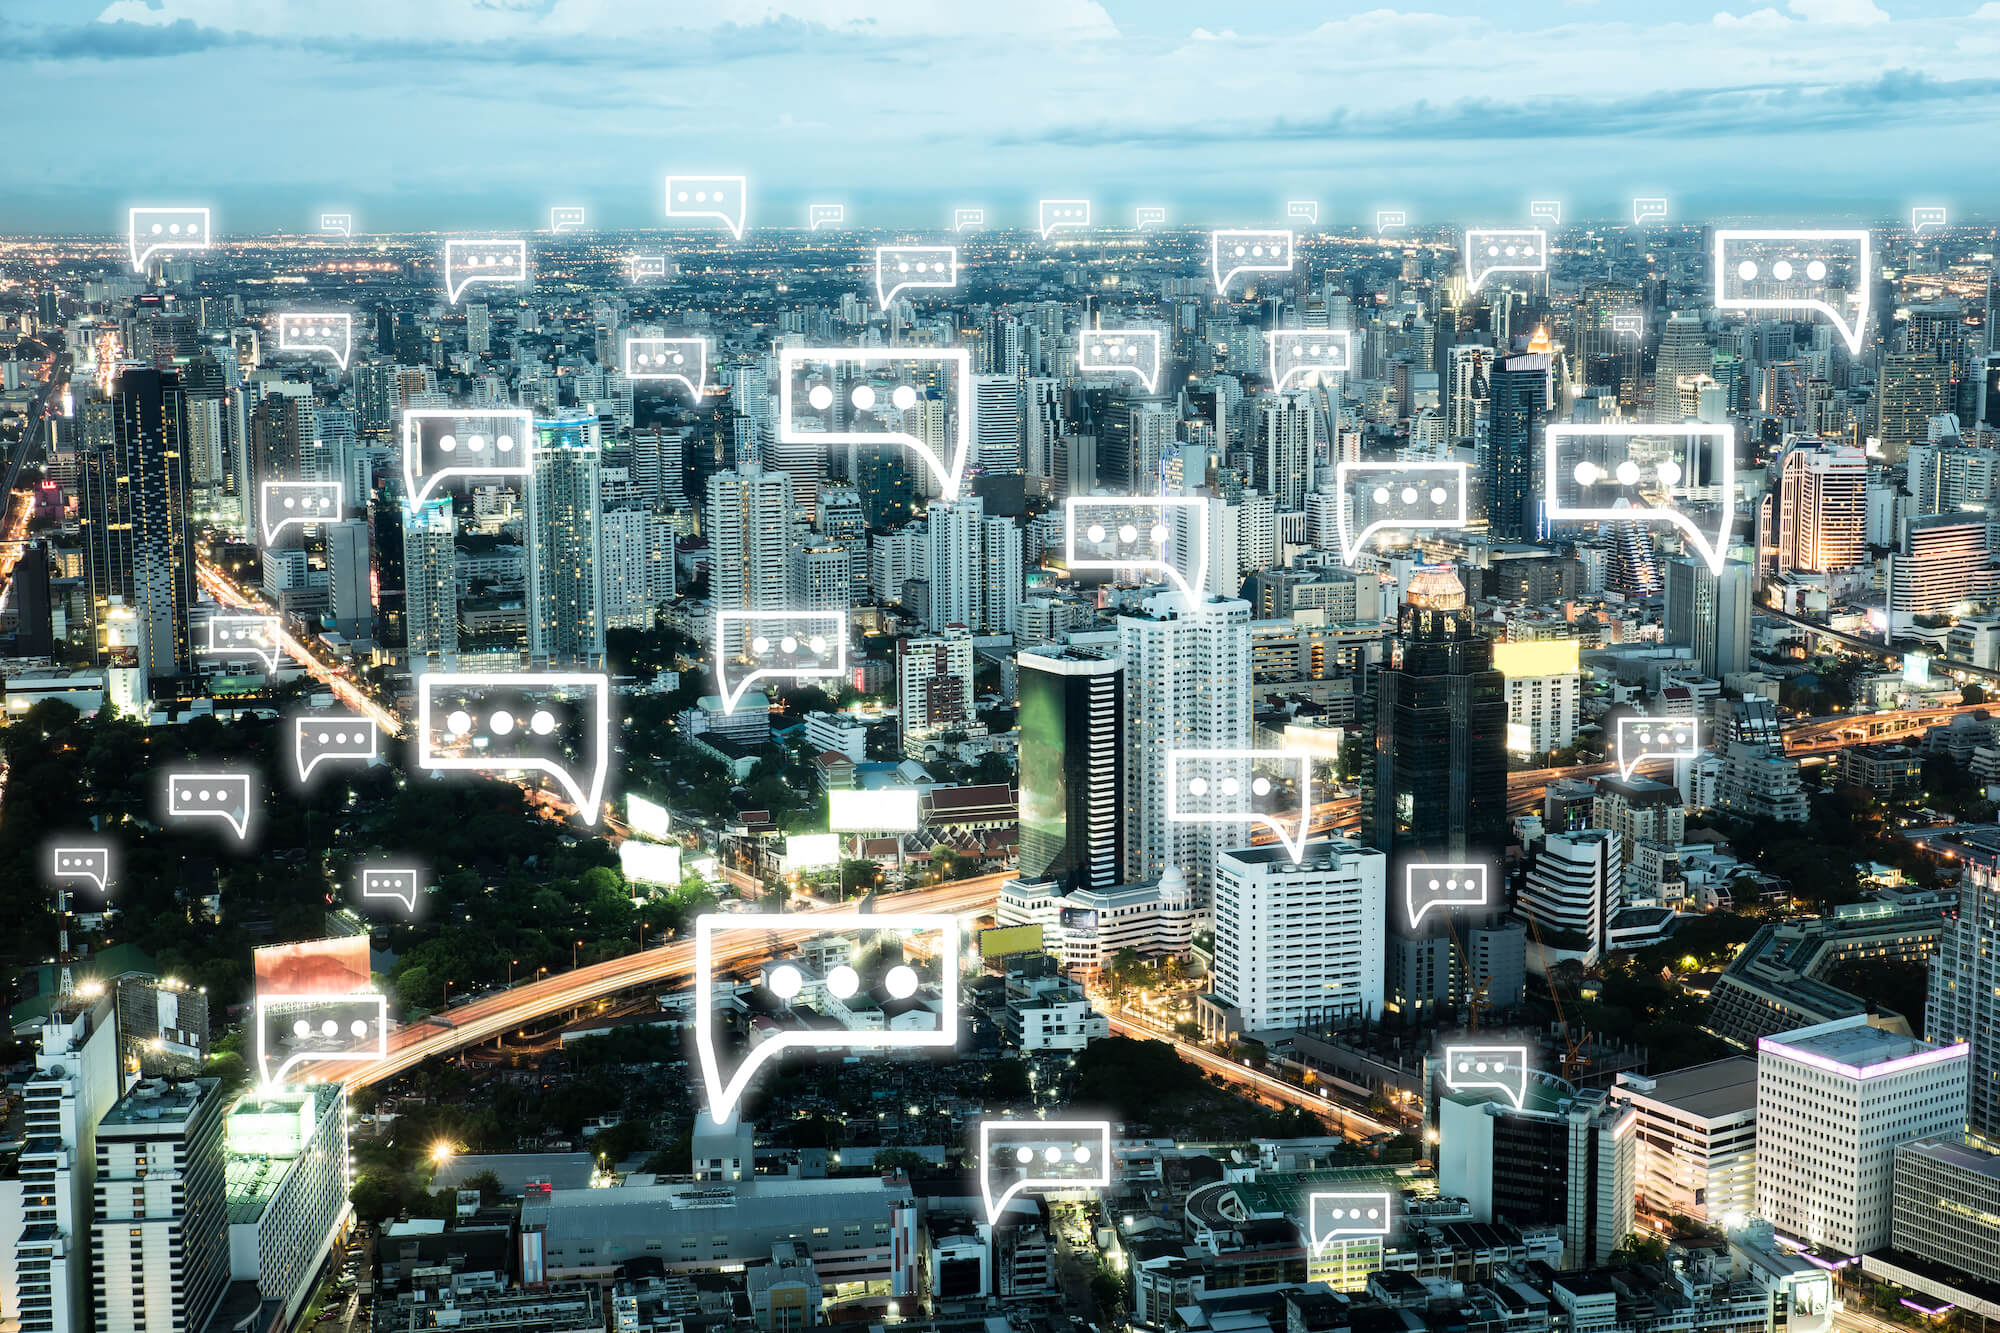 A view of a city, with chat messaging bubbles displaying over the buildings.